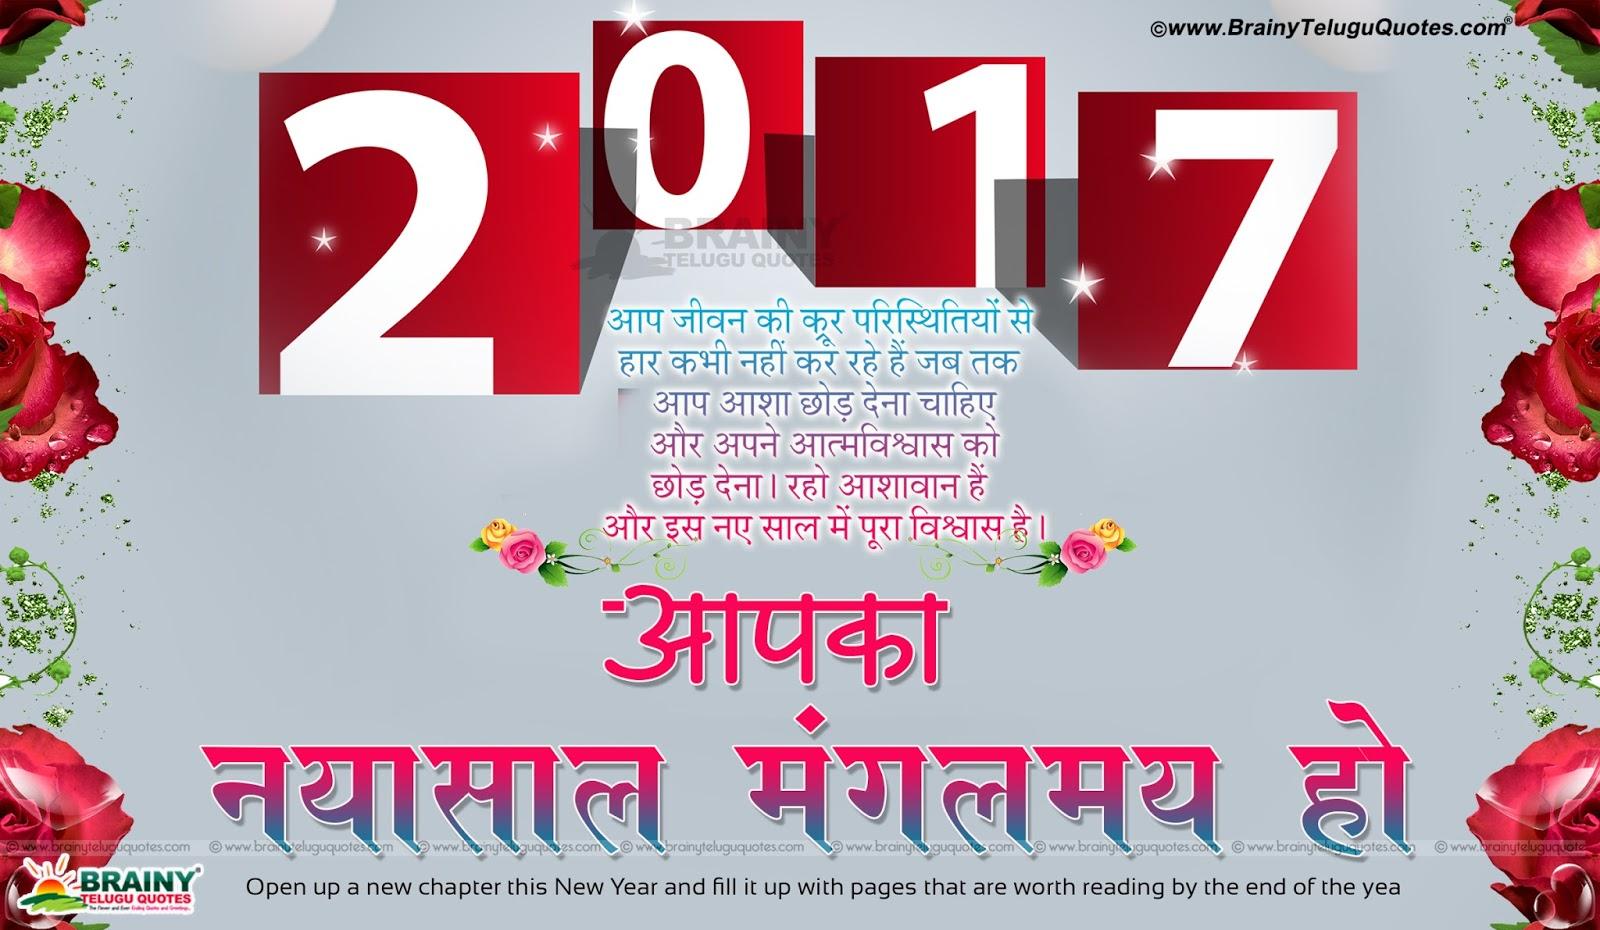 Best Latest 5 Hindi Inspirational New Year 2017 Greetings